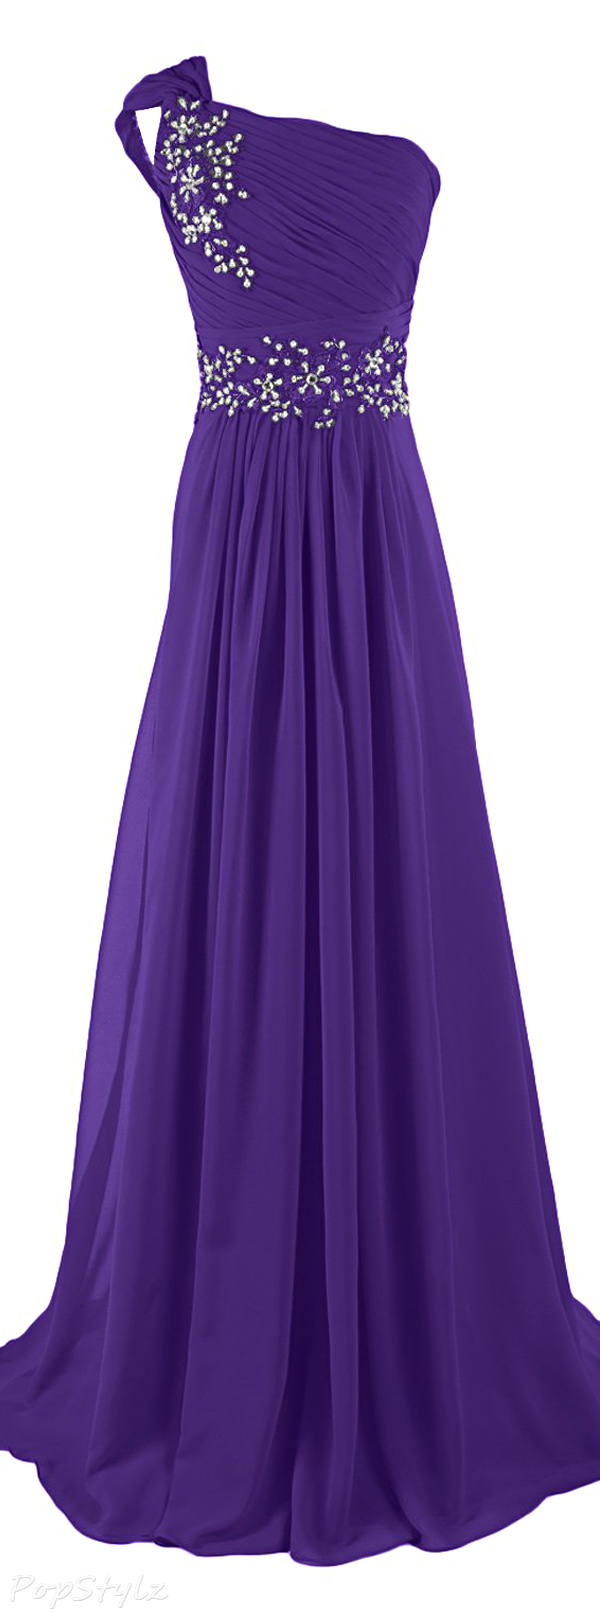 Sunvary One Shoulder Chiffon Evening Gown